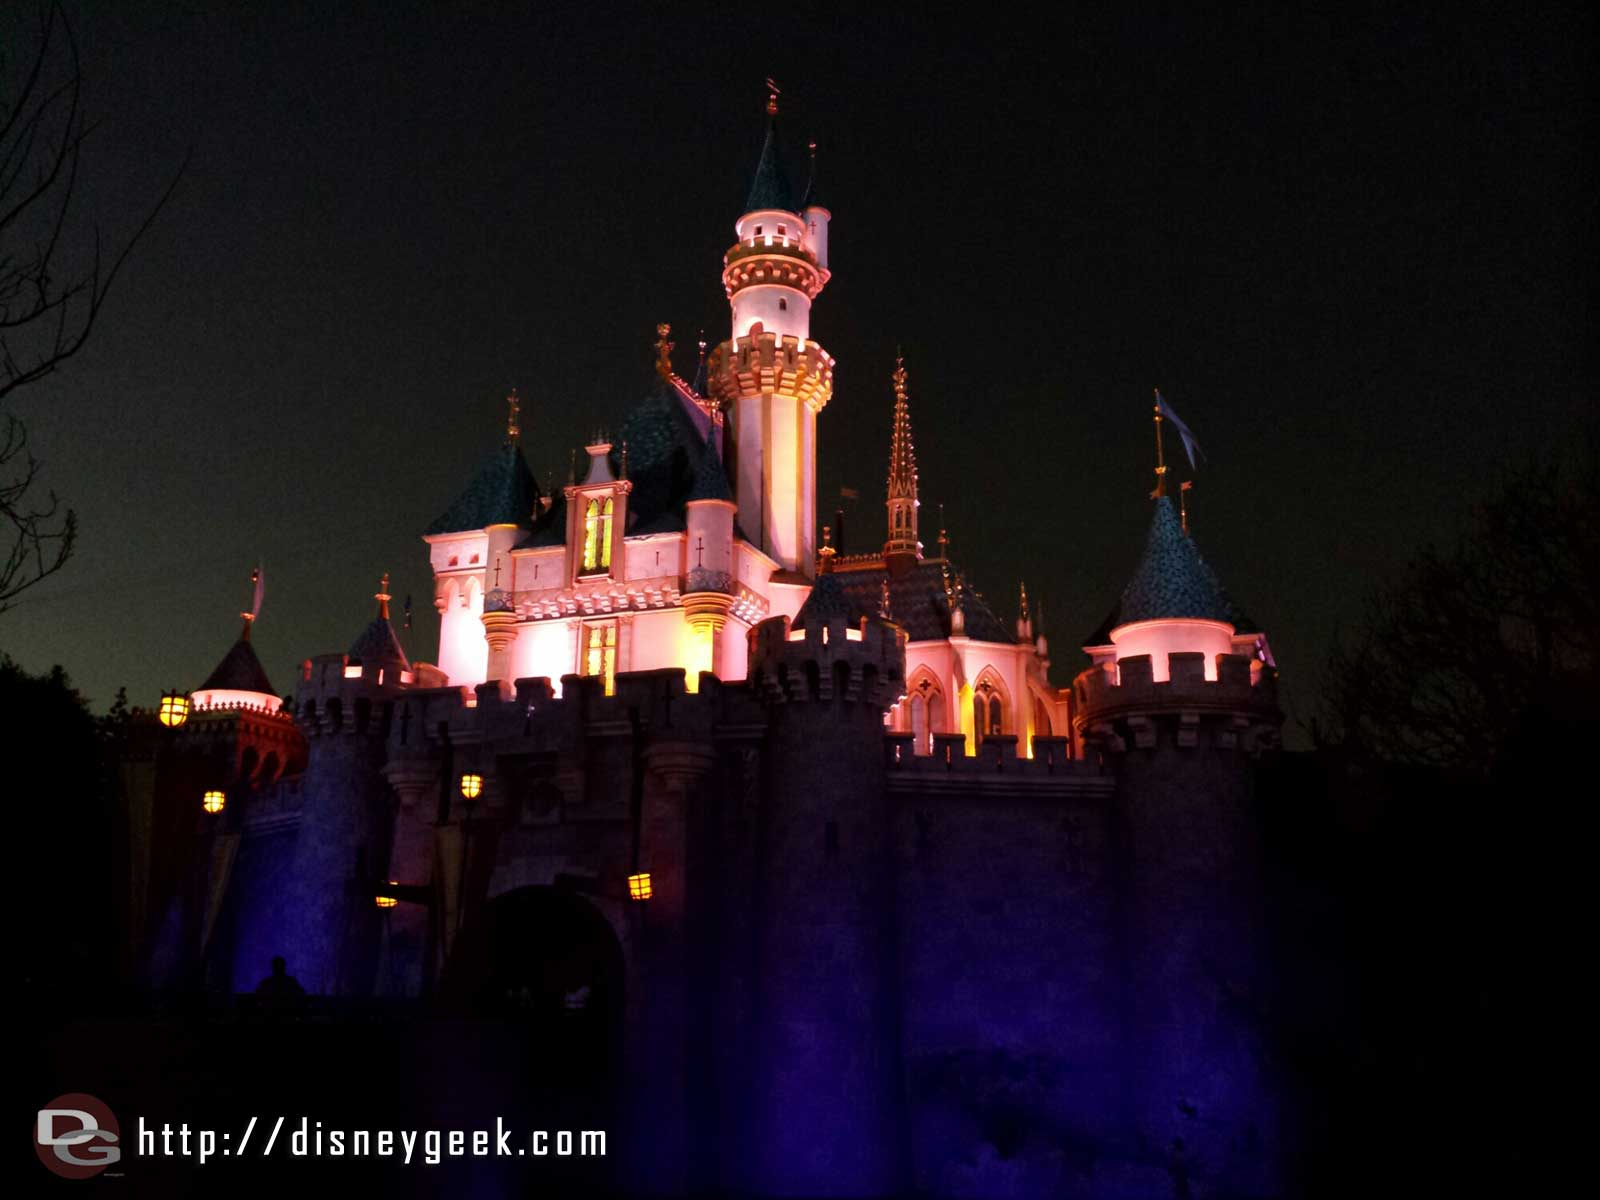 Sleeping Beauty Castle this evening #Disneyland